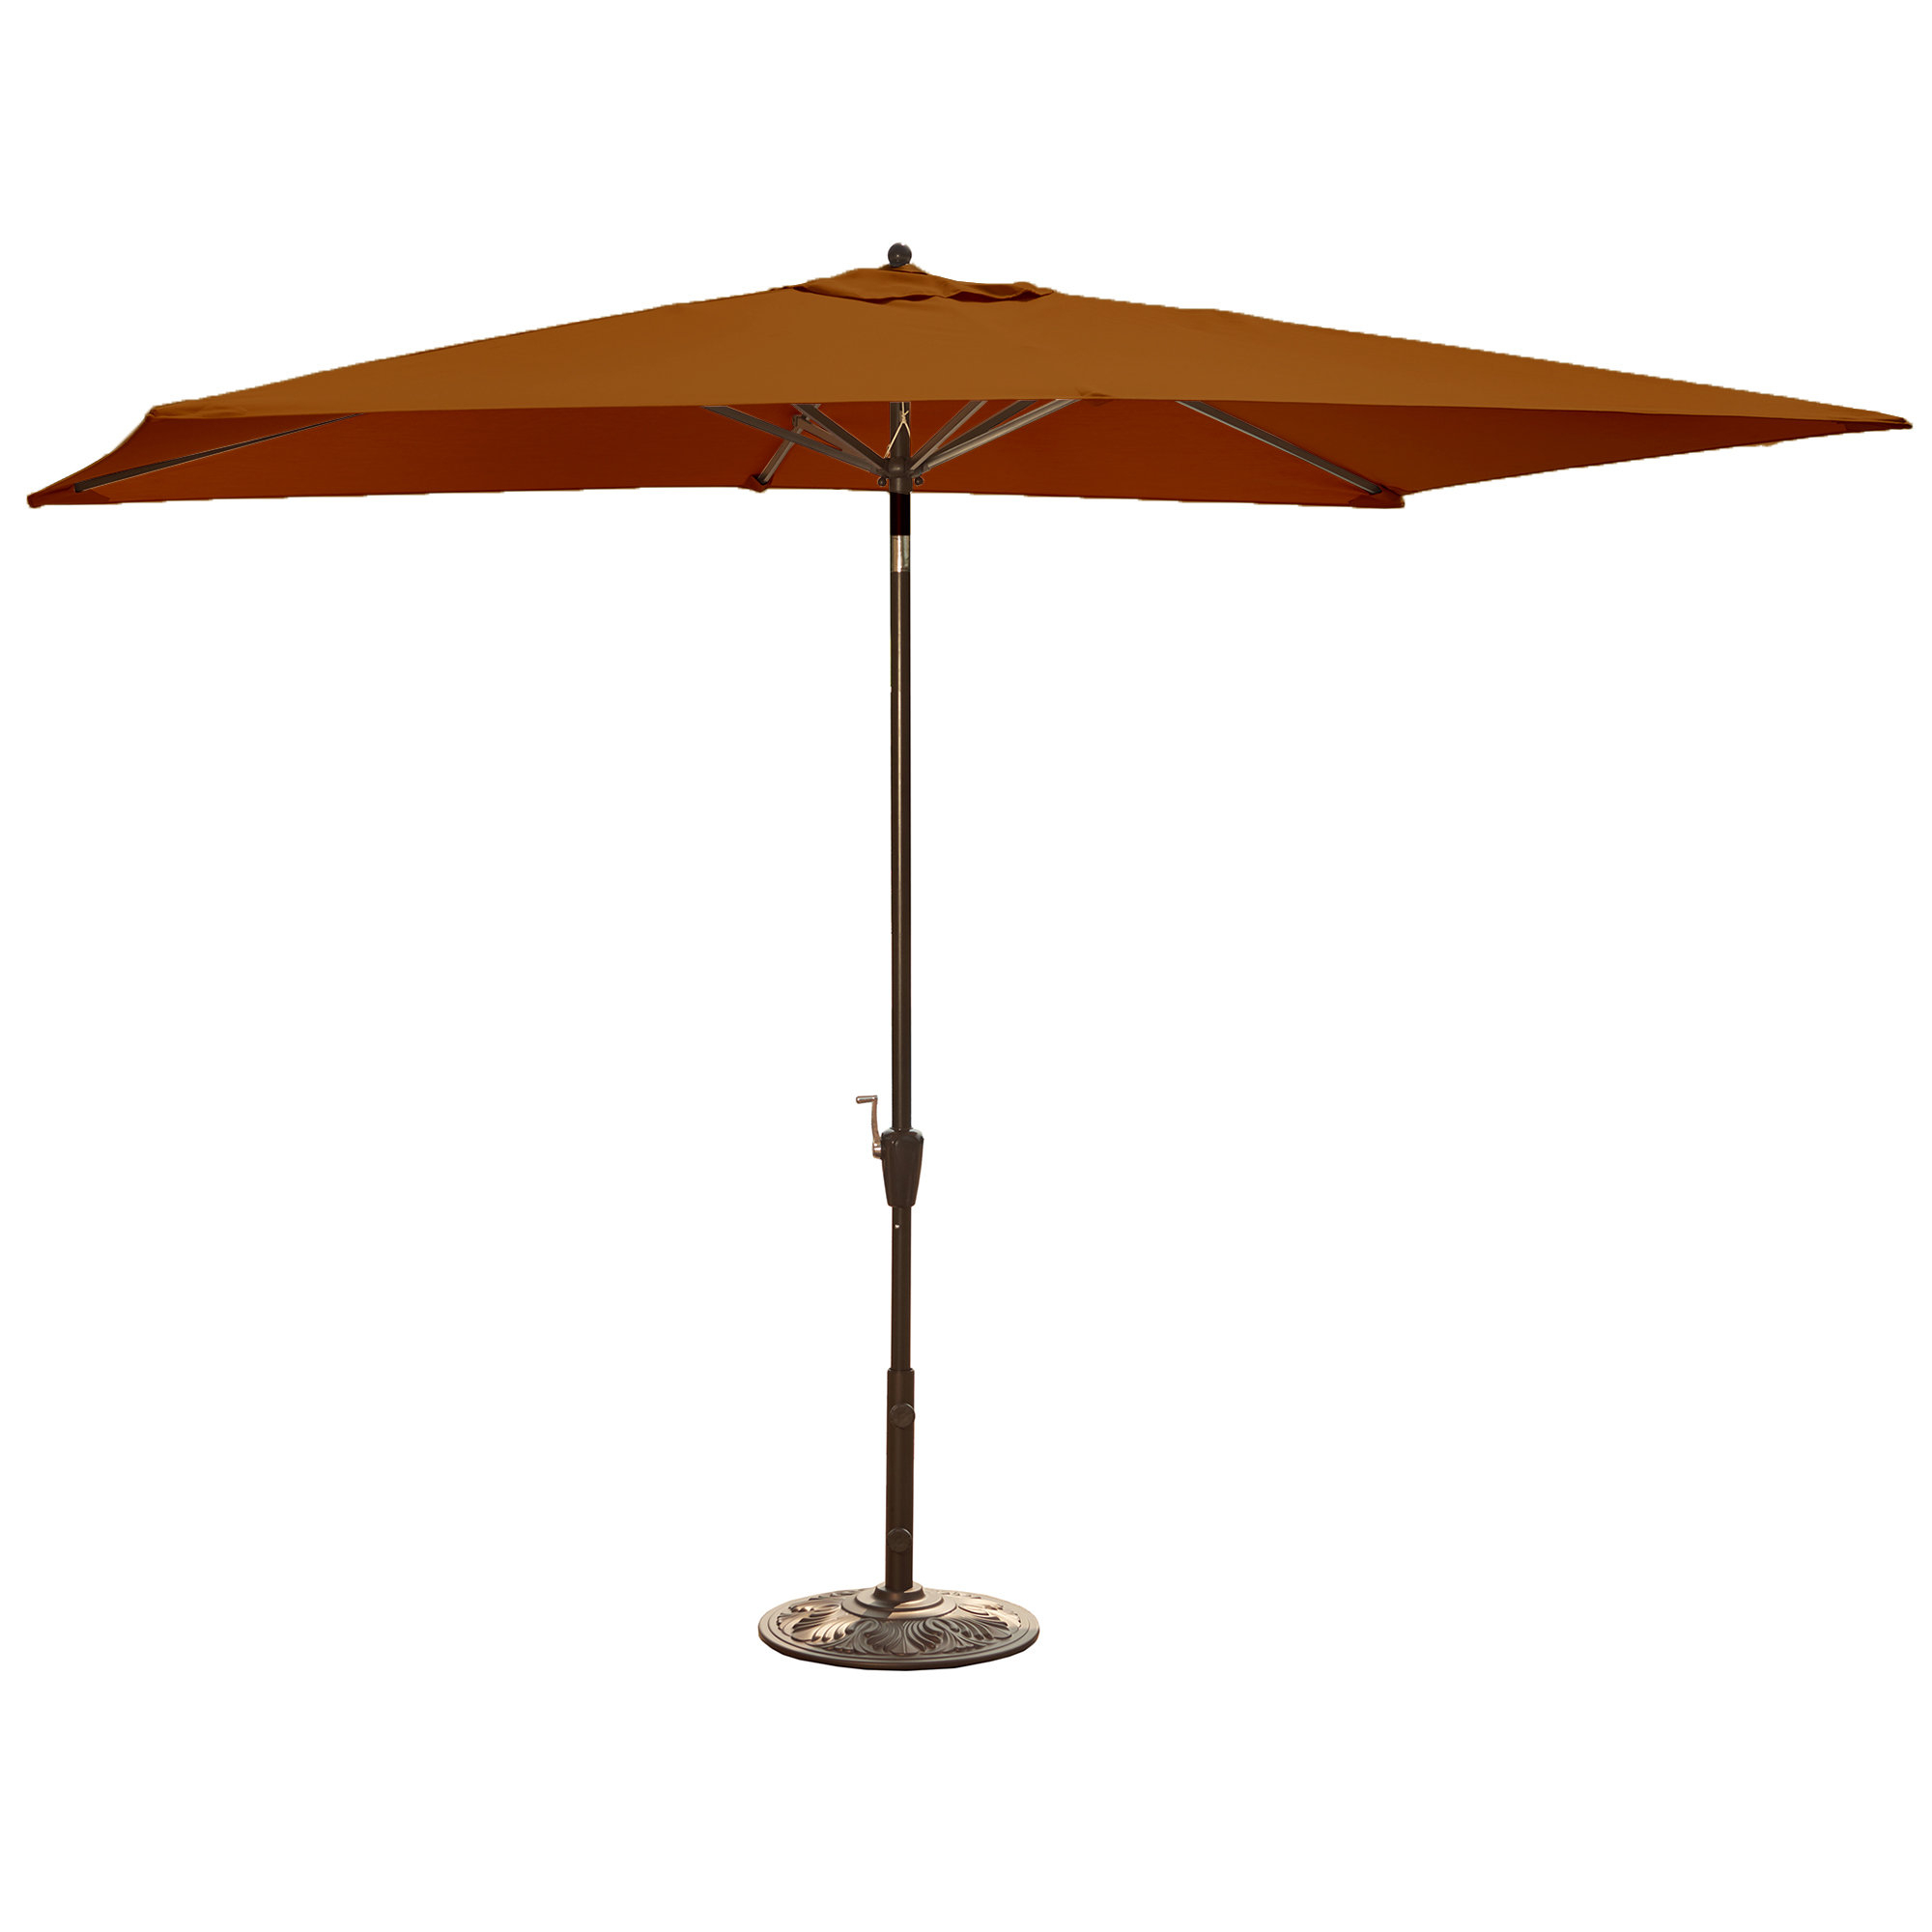 Most Recent Bonita Rectangular Market Umbrellas Throughout Bonview 10' X 6.5' Rectangular Market Umbrella (Gallery 5 of 20)